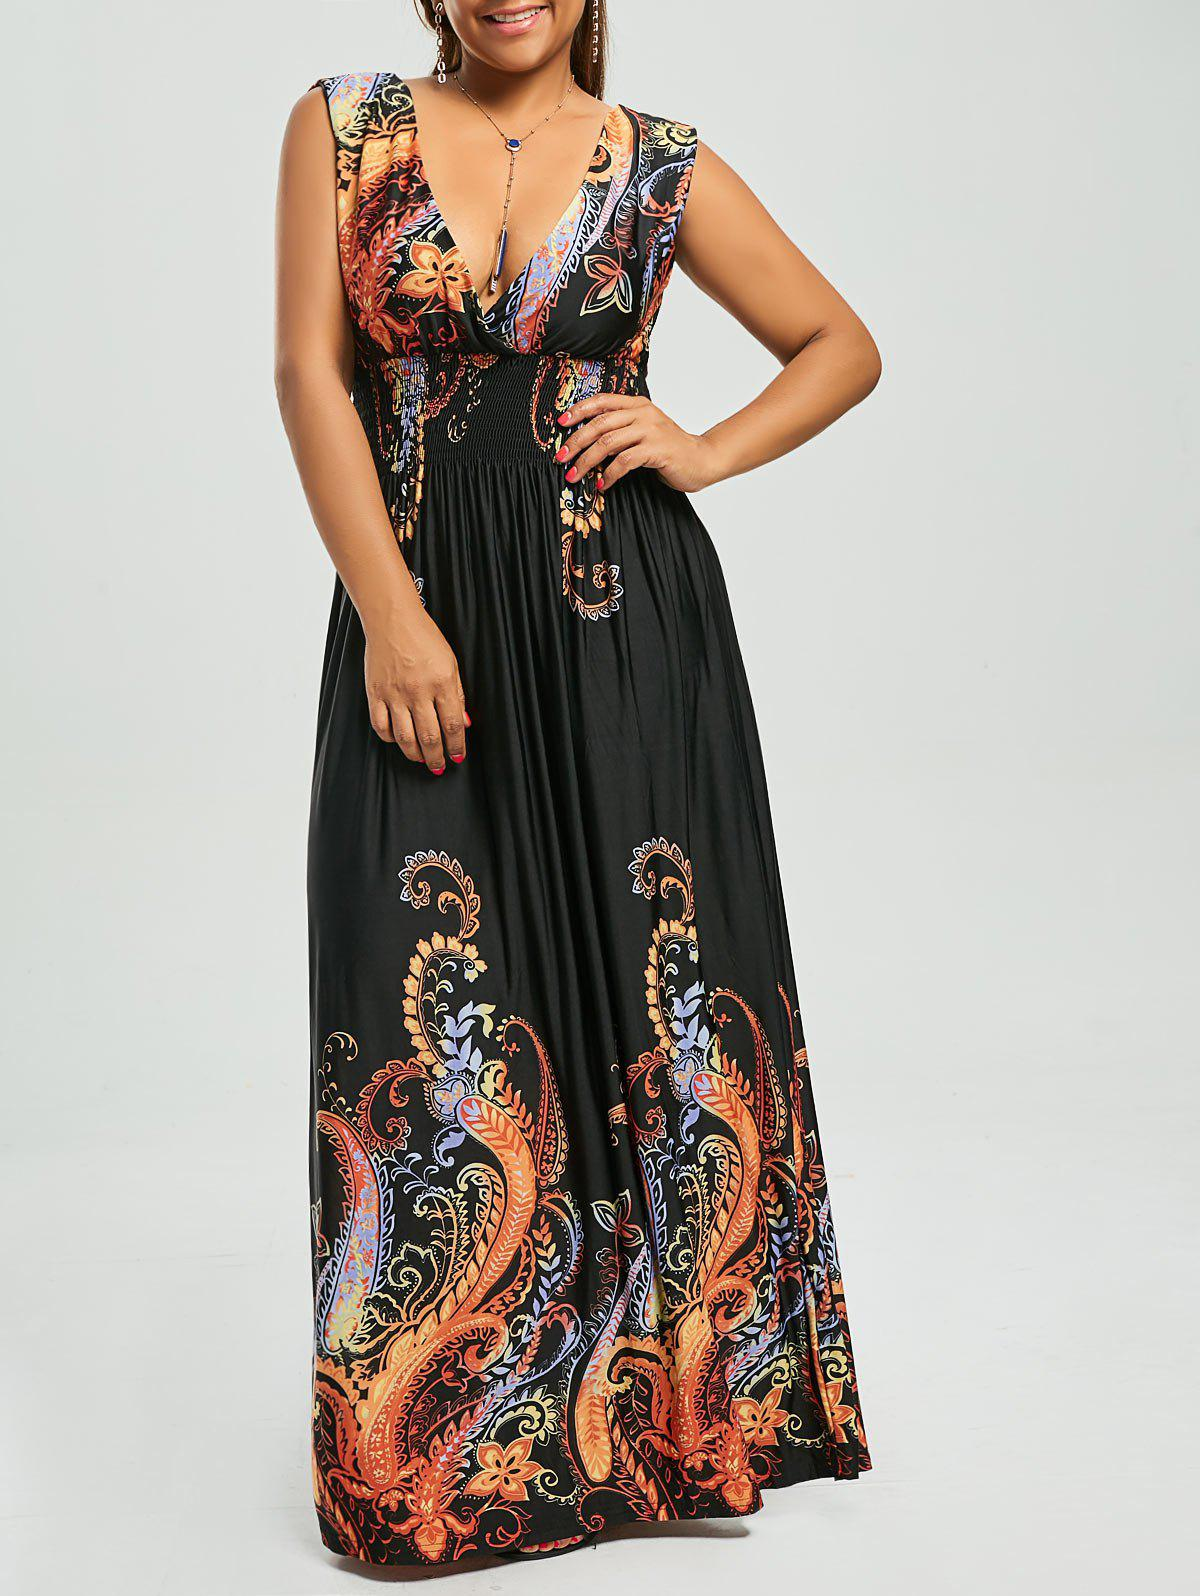 Paisley Plunge Maxi Evening Dress for Plus SizeWOMEN<br><br>Size: 3XL; Color: BLACK; Style: Bohemian; Material: Cotton,Cotton Blend,Polyester; Silhouette: Beach; Dresses Length: Floor-Length; Neckline: Plunging Neck; Sleeve Length: Sleeveless; Waist: Empire; Pattern Type: Paisley,Print; With Belt: No; Season: Spring,Summer; Weight: 0.3800kg; Package Contents: 1 x Dress;